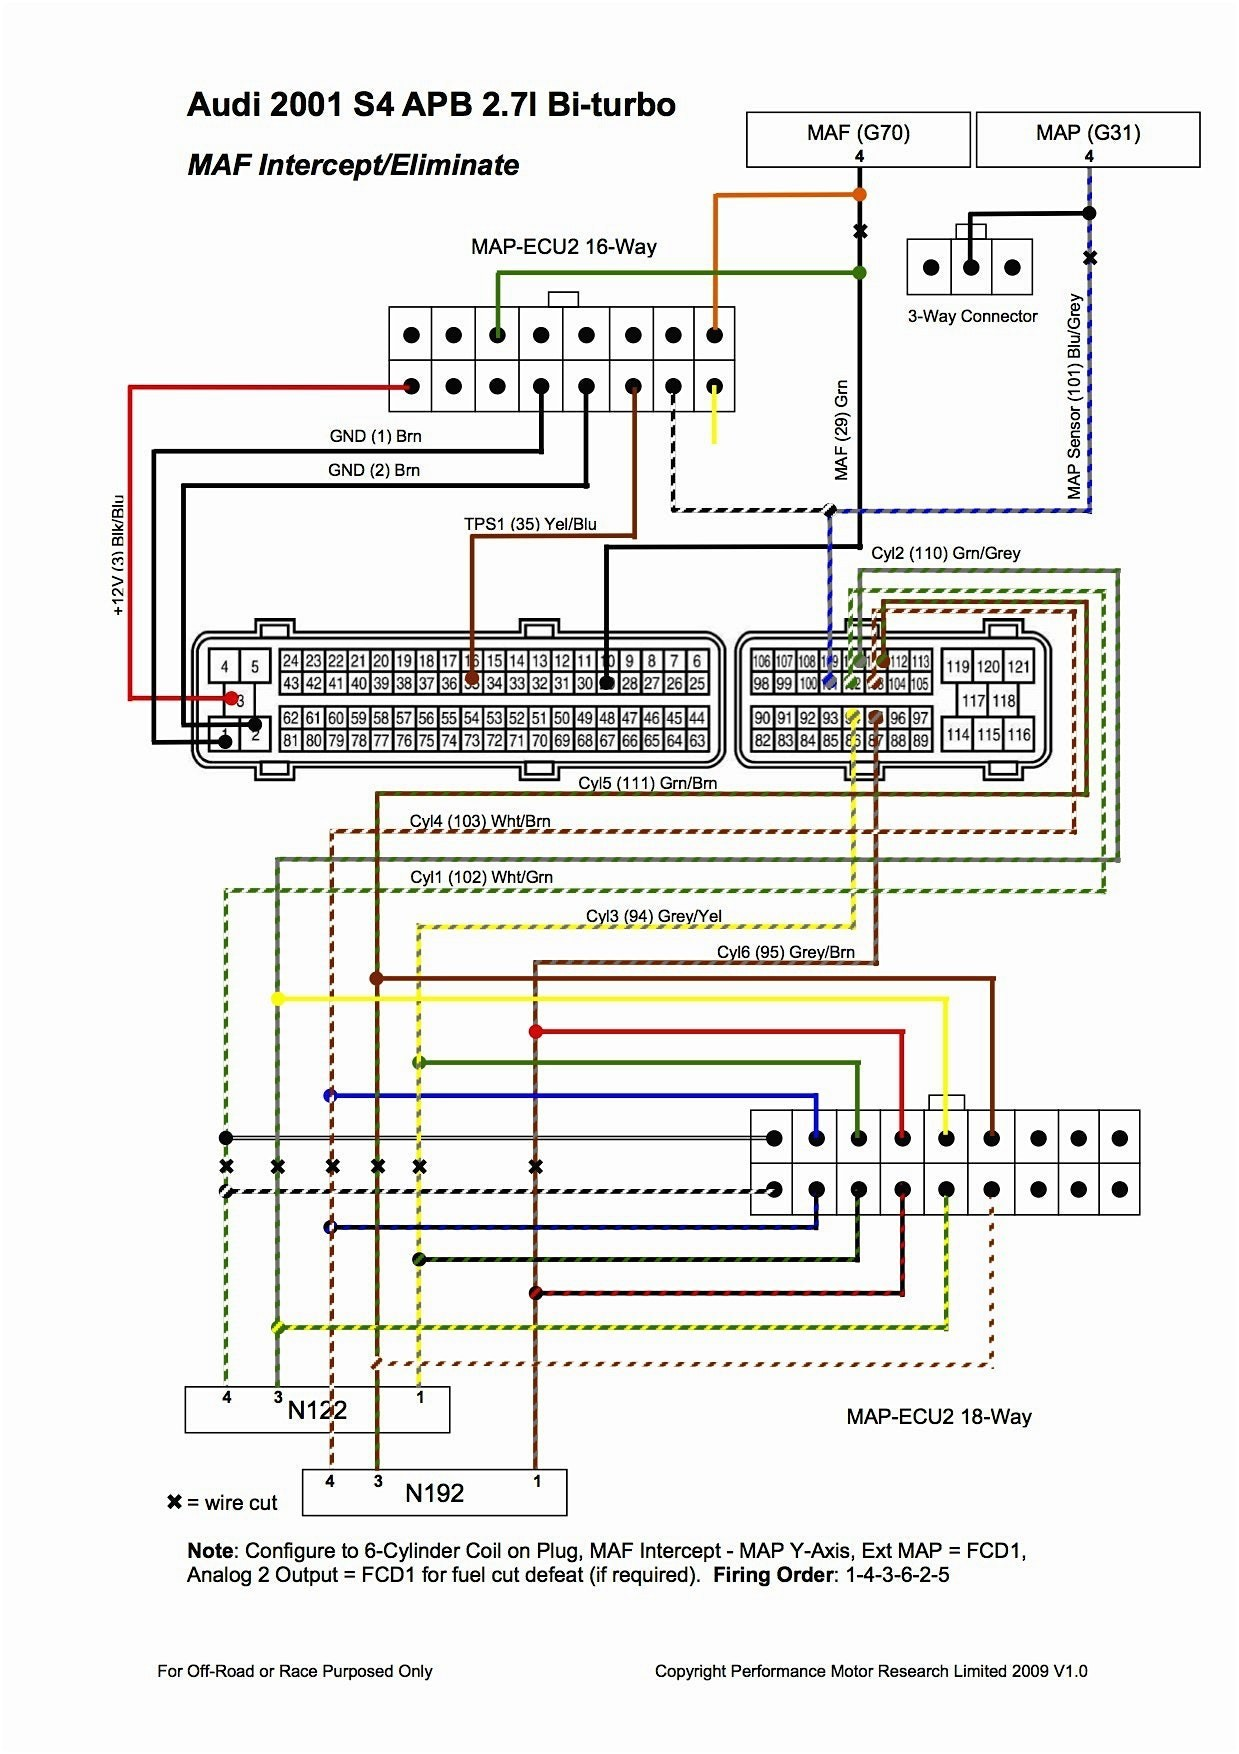 Fuse Diagram 2000 Sienna Worksheet And Wiring 2004 Toyota Box 2007 Tundra Rh Detoxicrecenze Com 2001